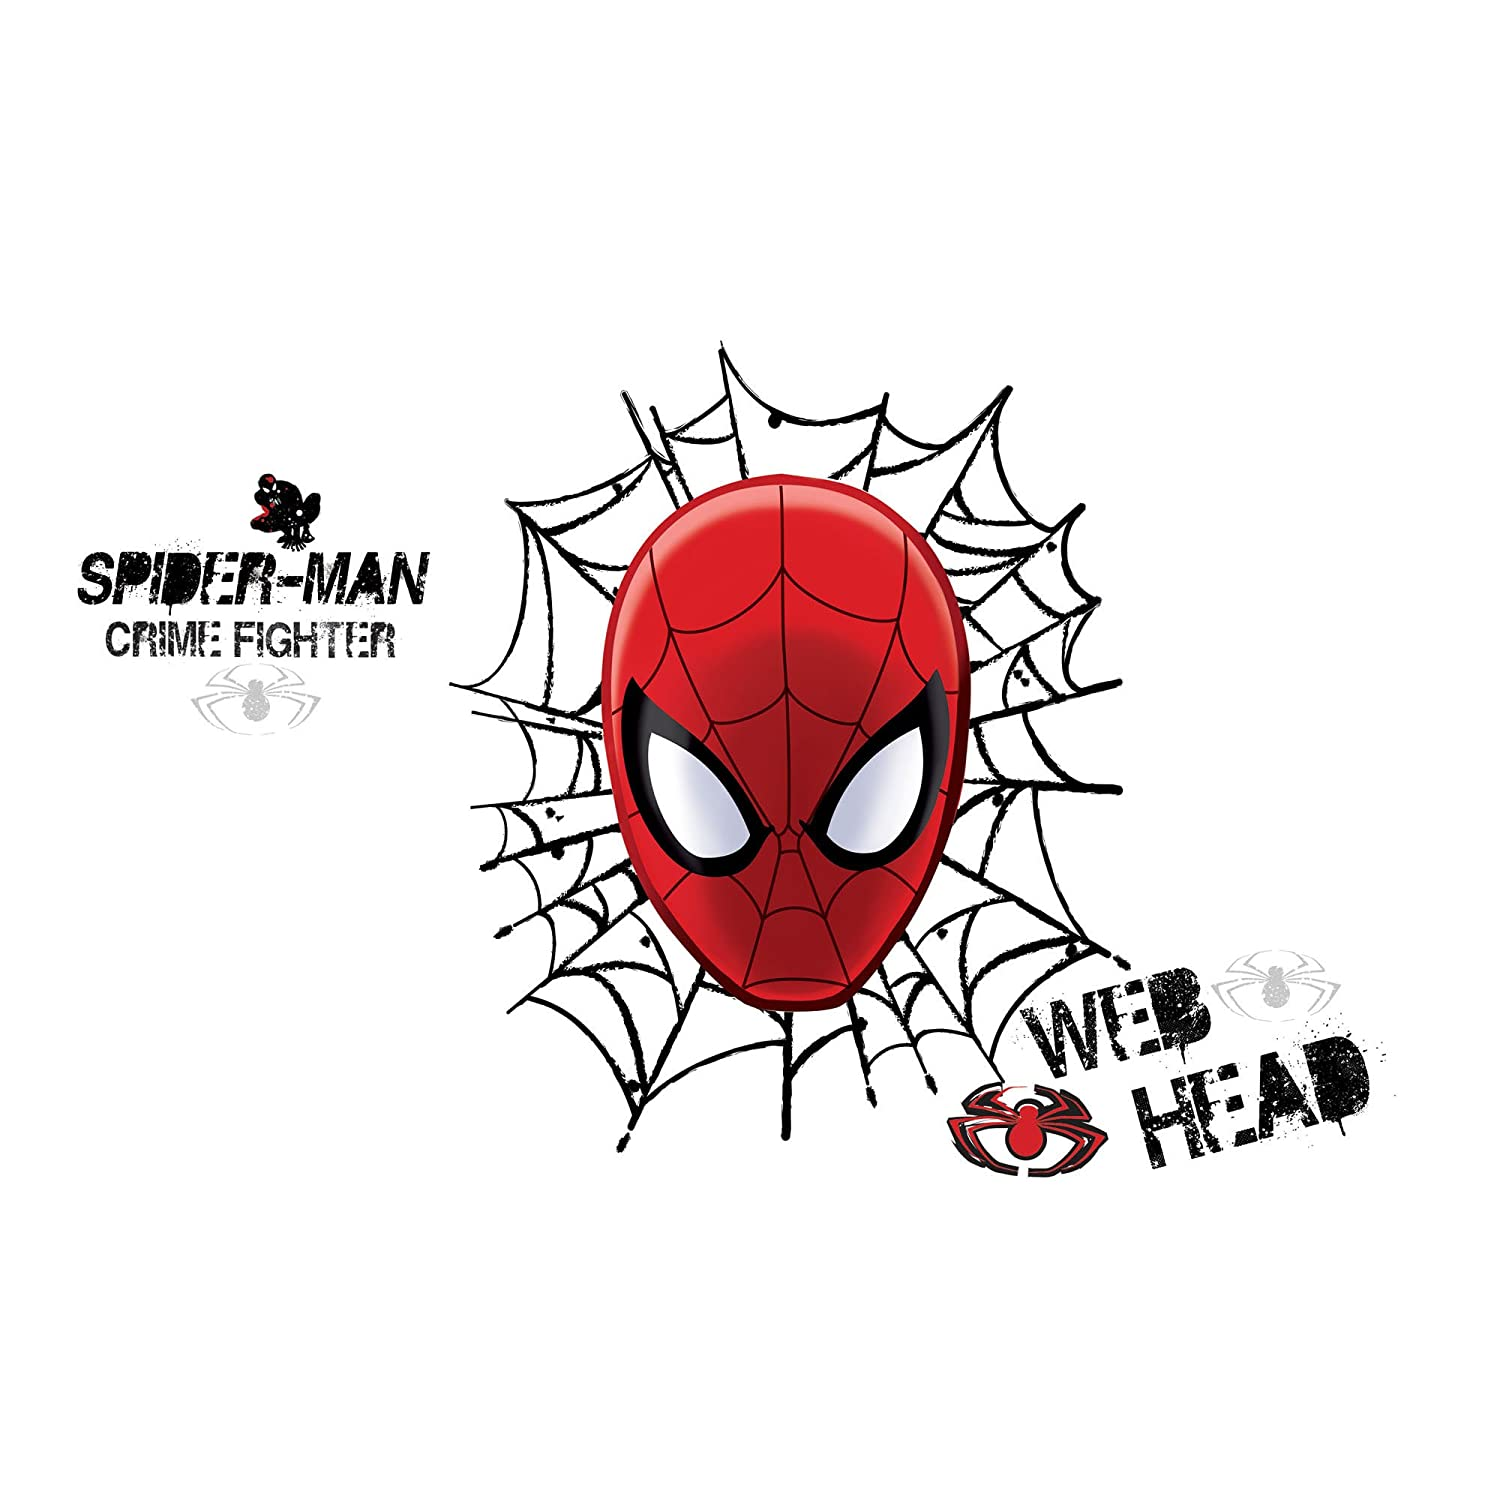 amazon com roommates rmk2172gm ultimate spider man web head peel amazon com roommates rmk2172gm ultimate spider man web head peel and stick wall decals 1 pack home improvement